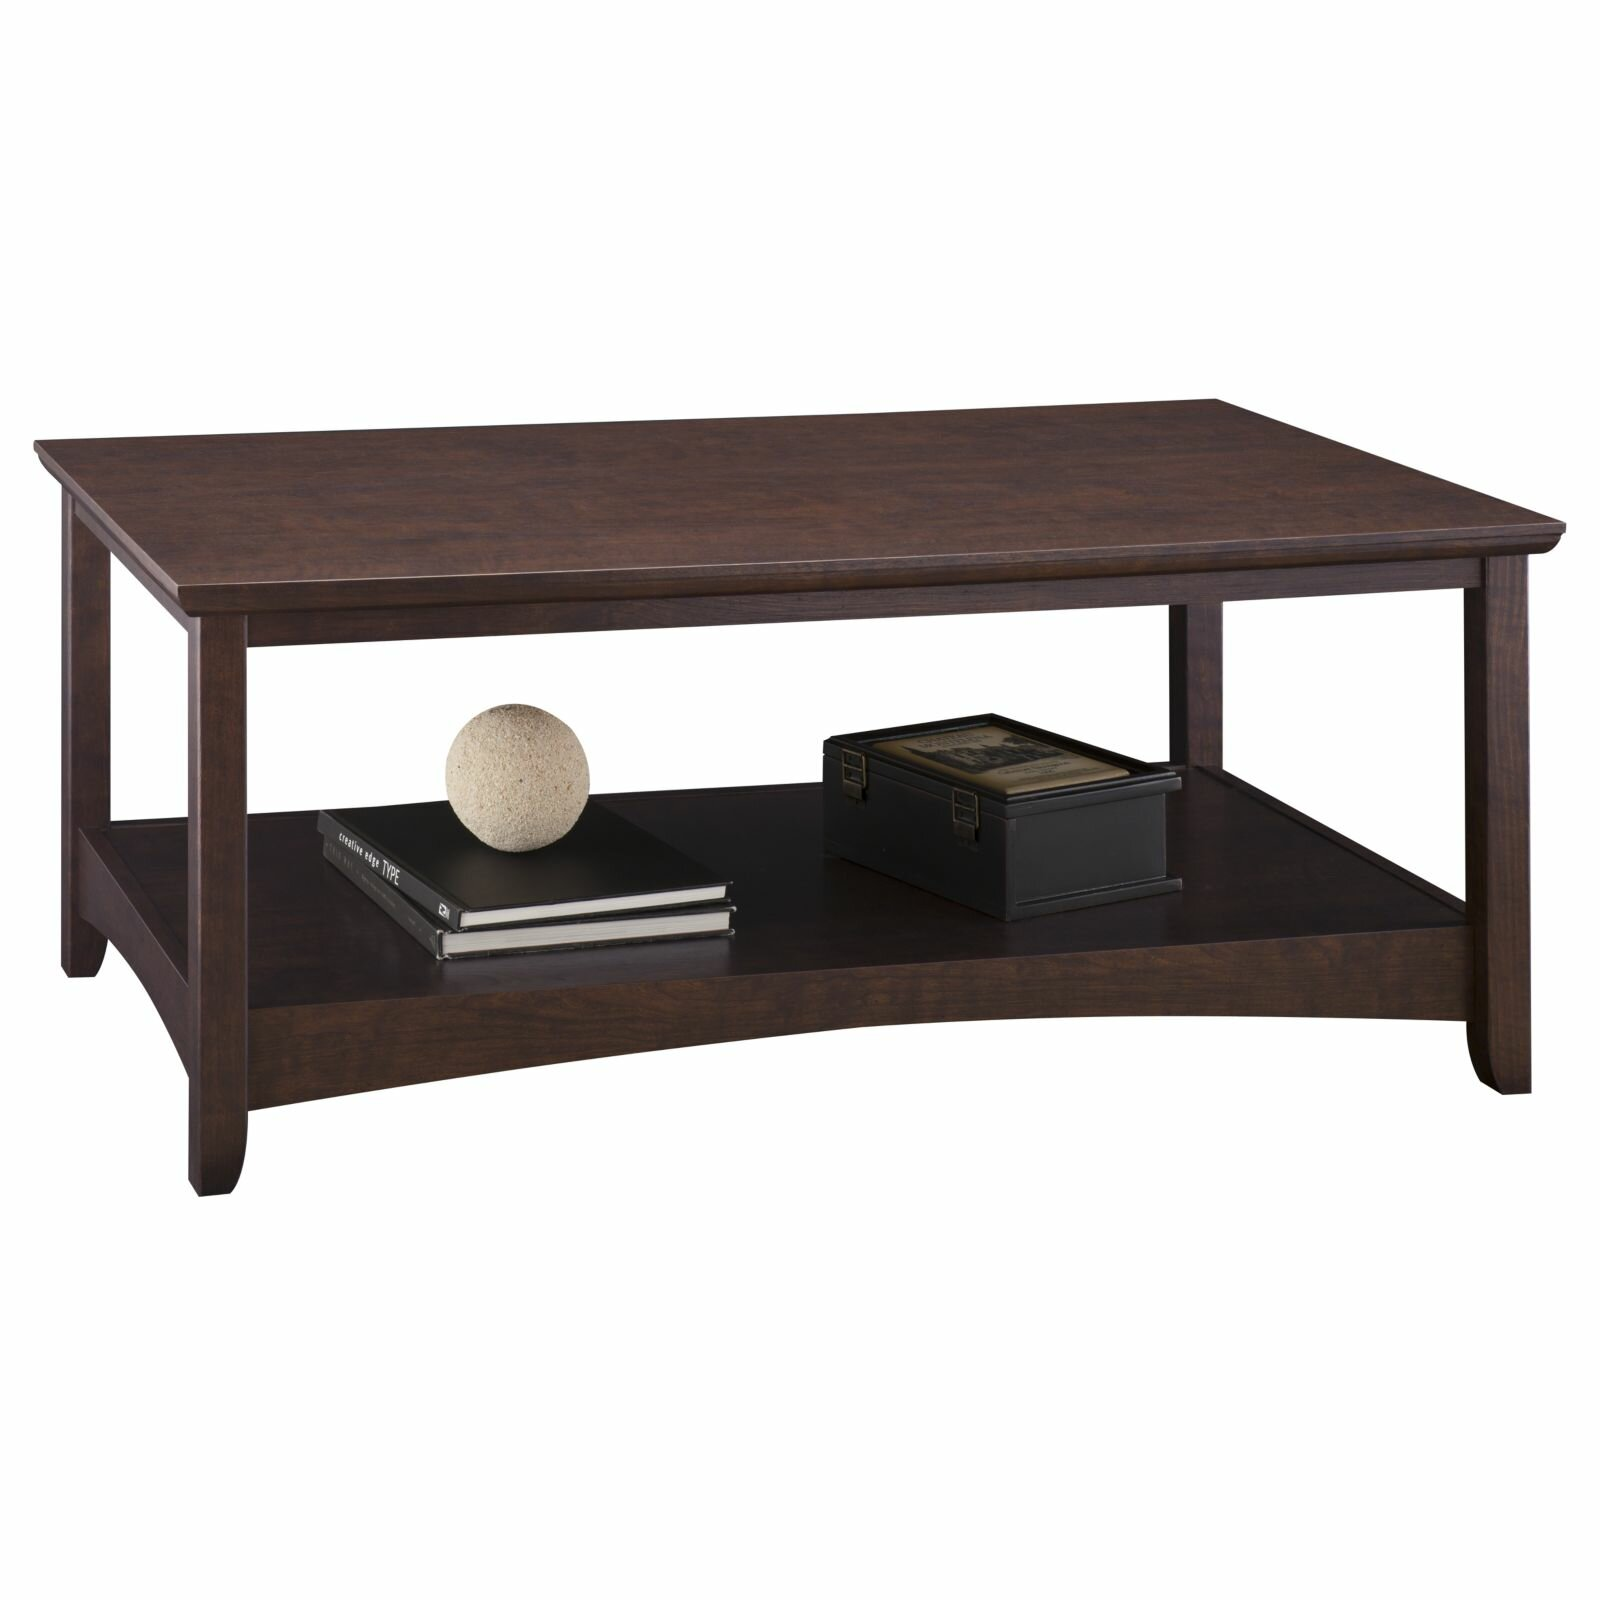 Darby Home Co Egger Coffee Table Reviews